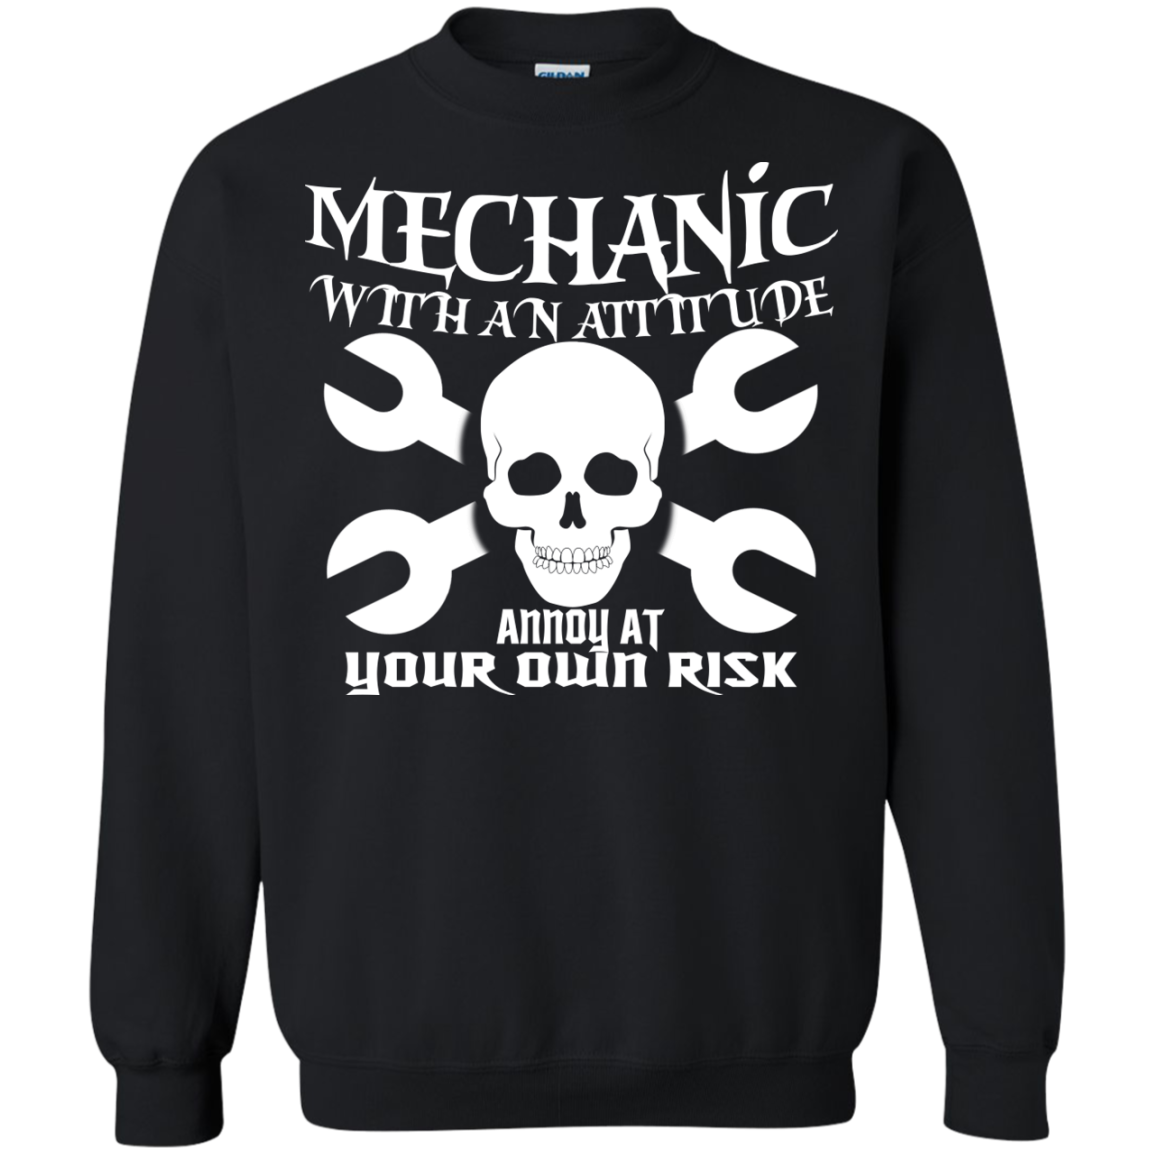 Mechanic With An Attitude Annoy At Your Own Risk Sweatshirts